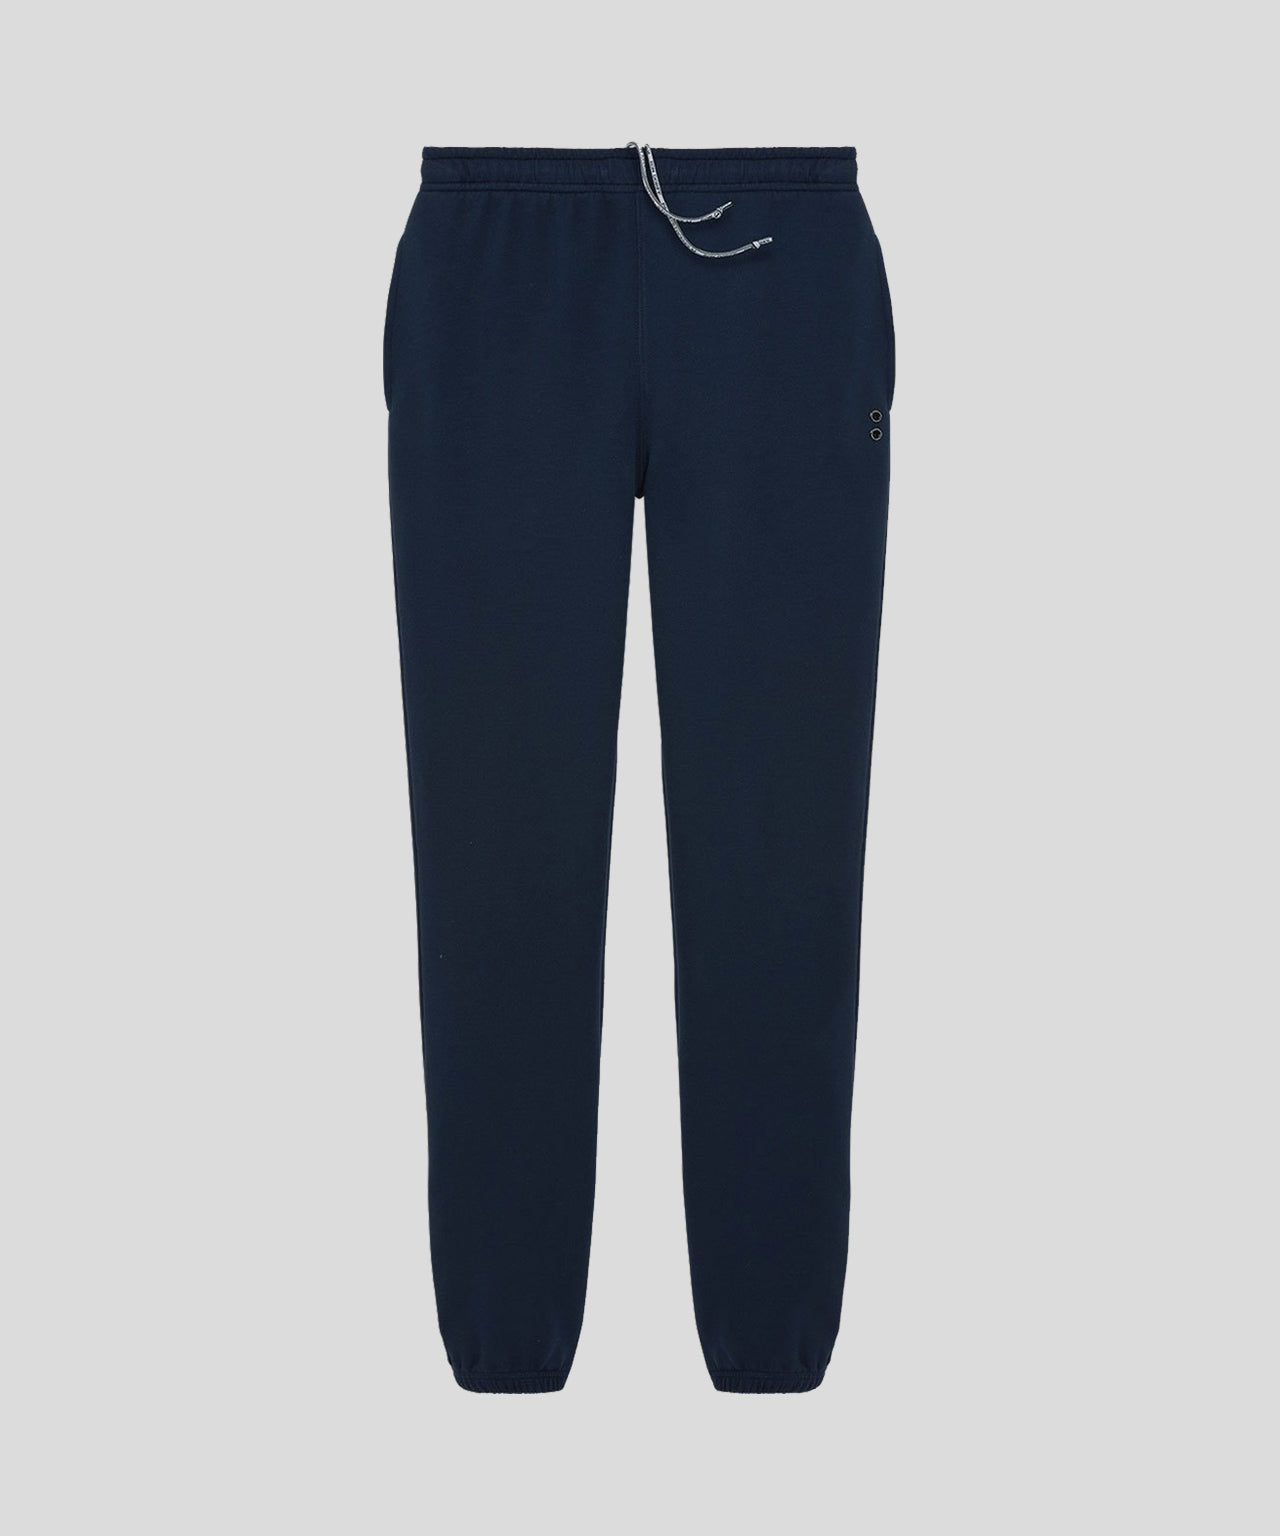 Jogging Trousers His For Her - navy